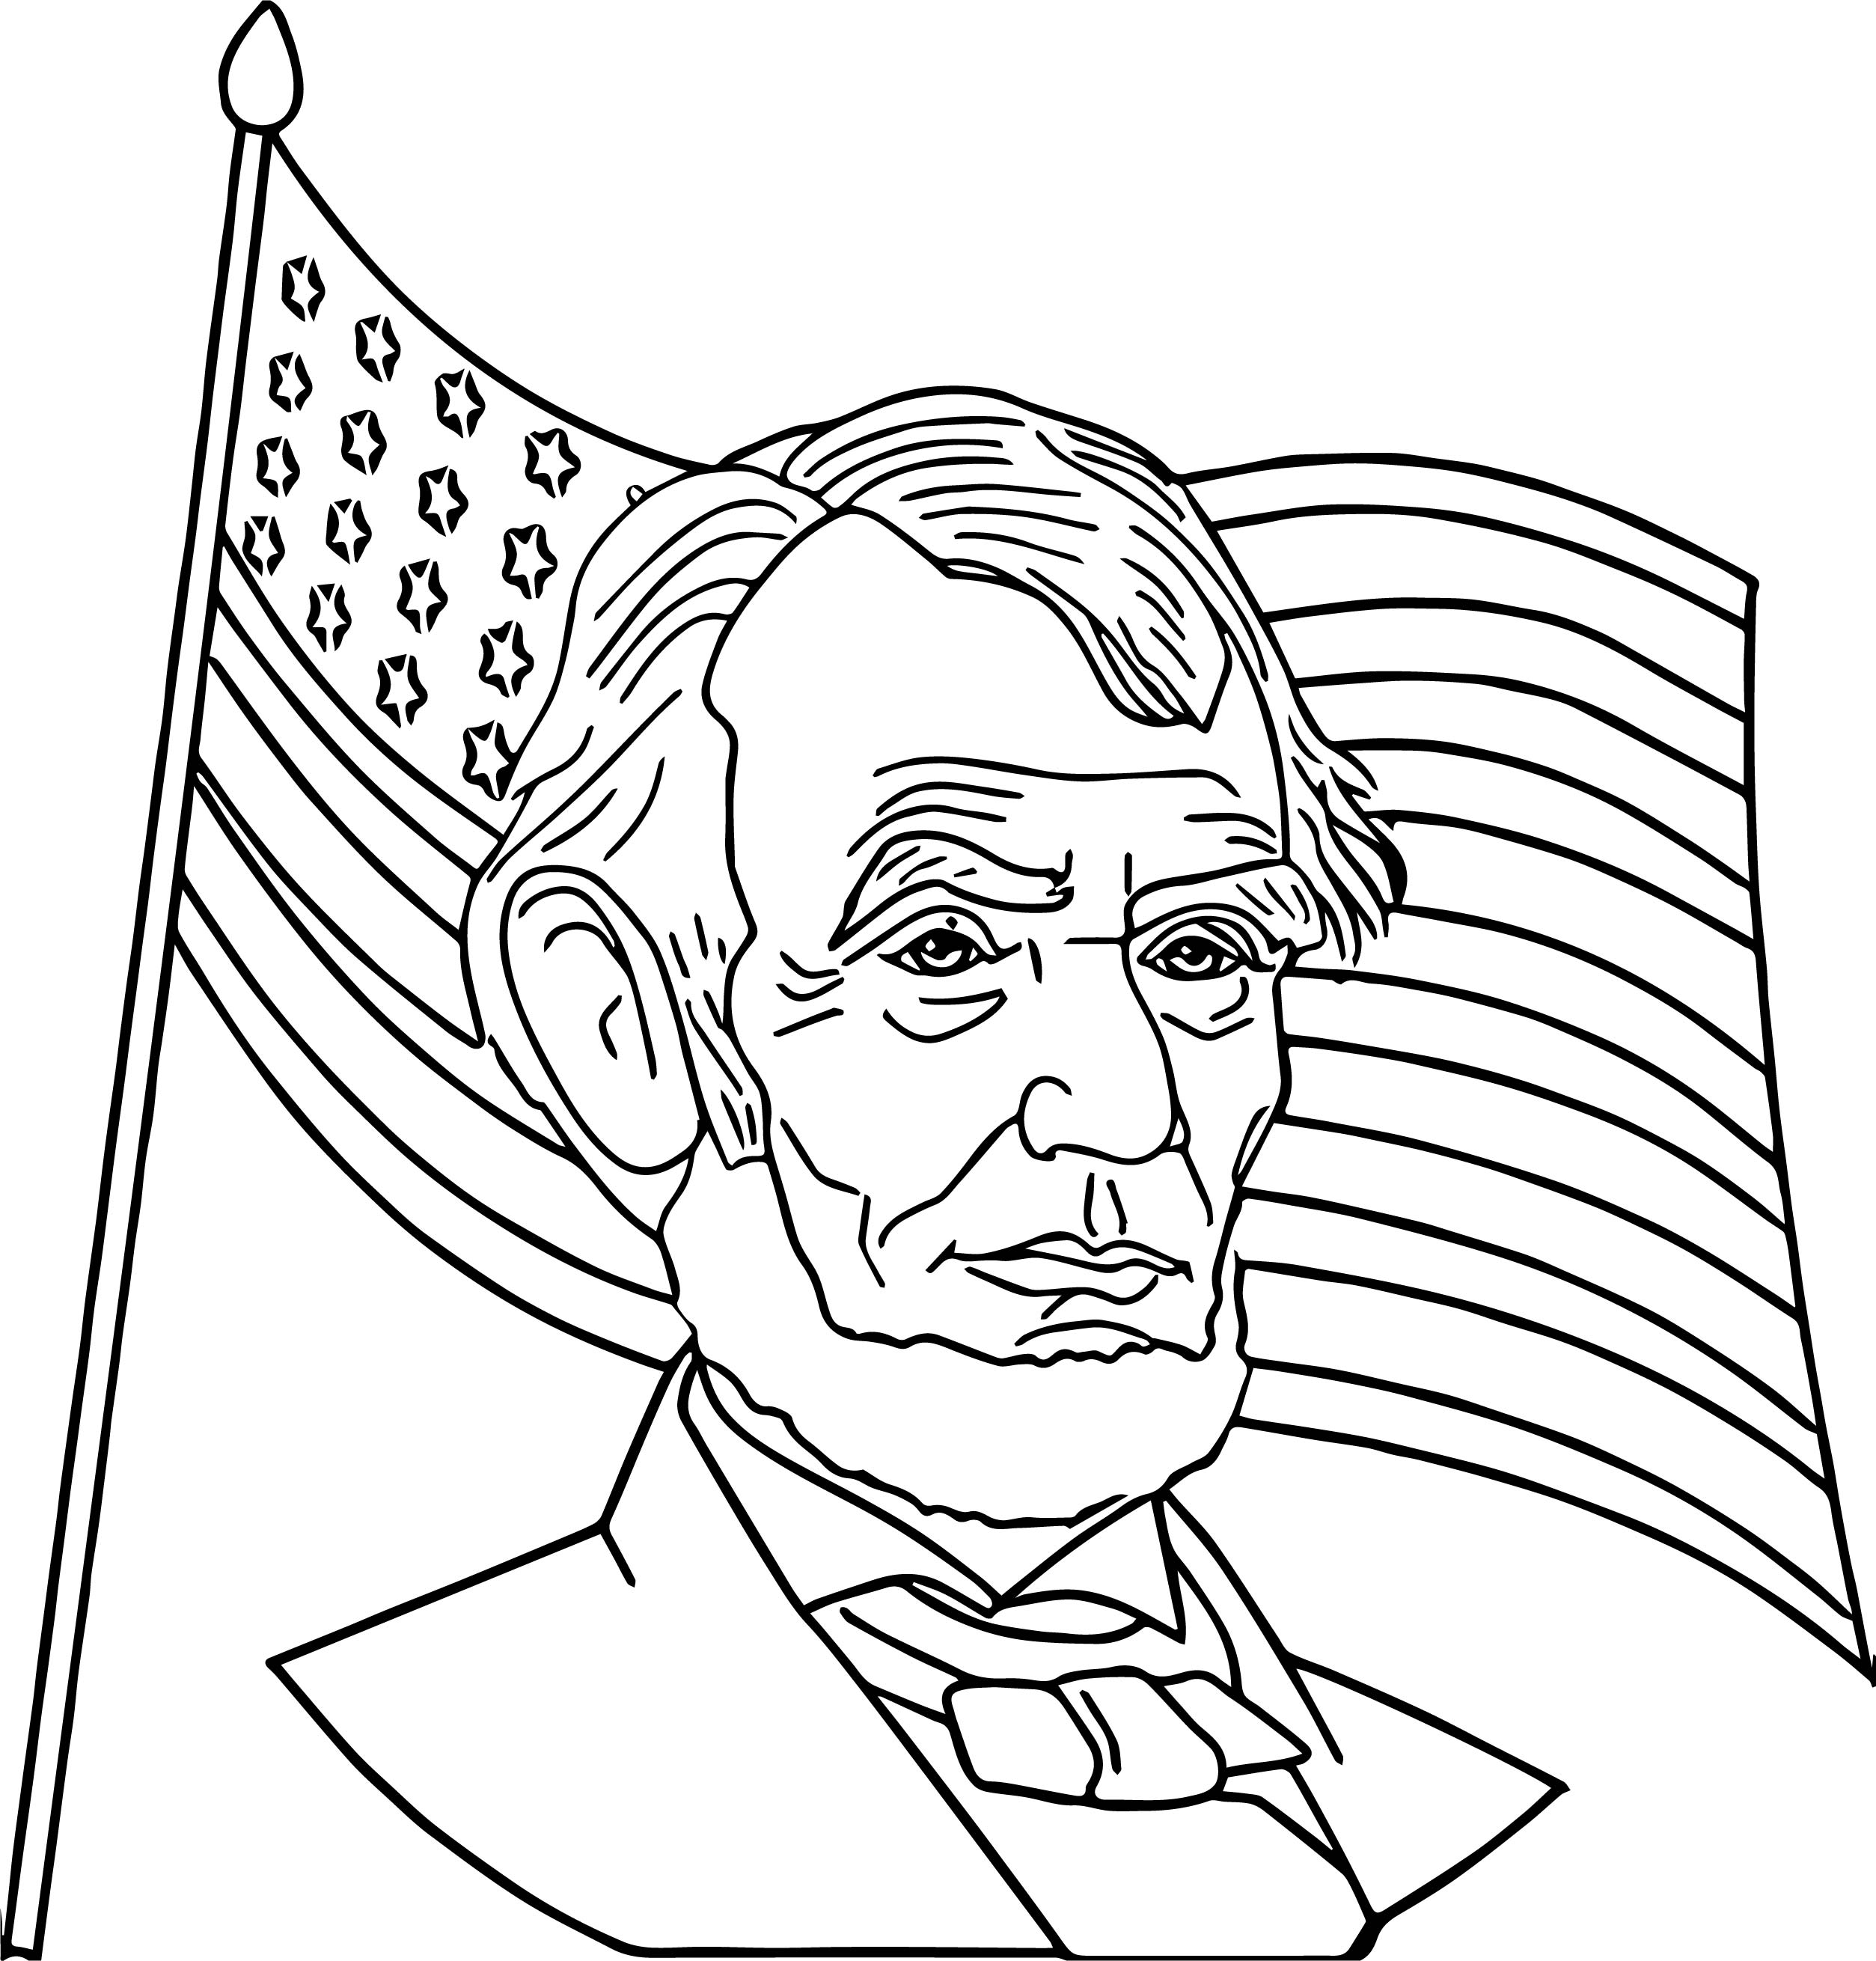 Abraham Lincoln With Hat Drawing at GetDrawings | Free ...